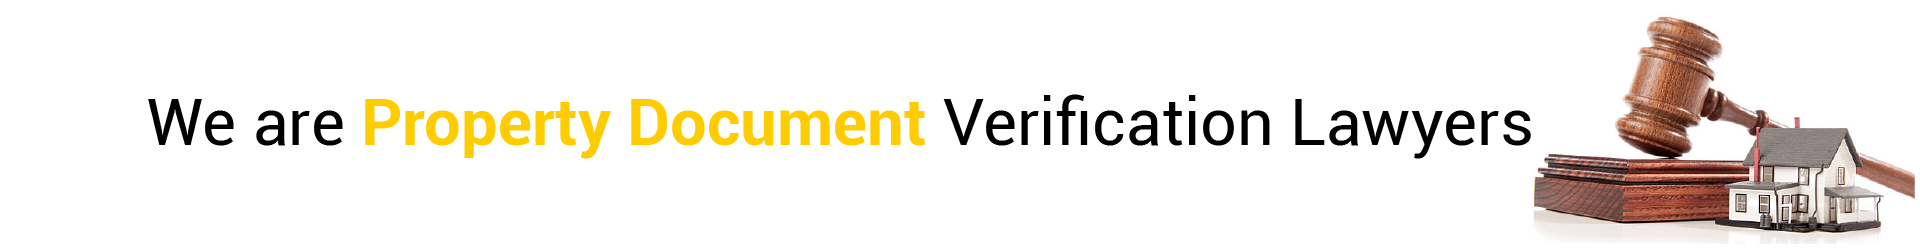 Property Document Verification Lawyers